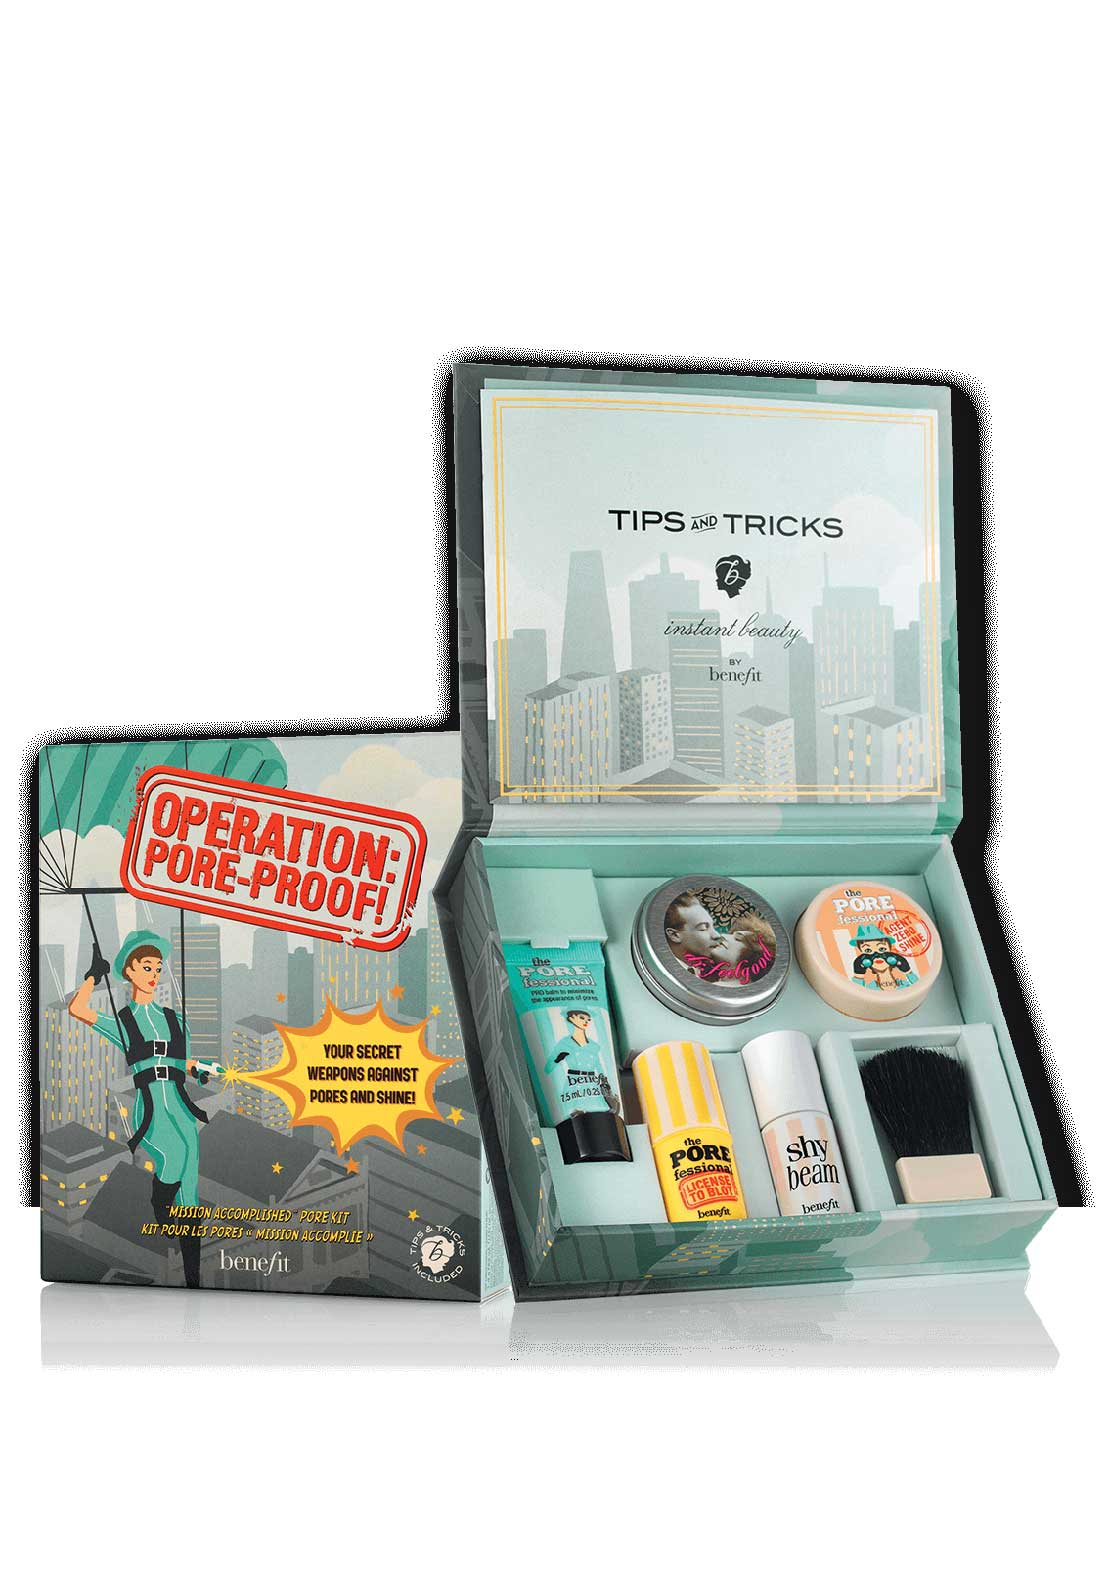 Benefit Operation Pore-Proof Complexion Kit